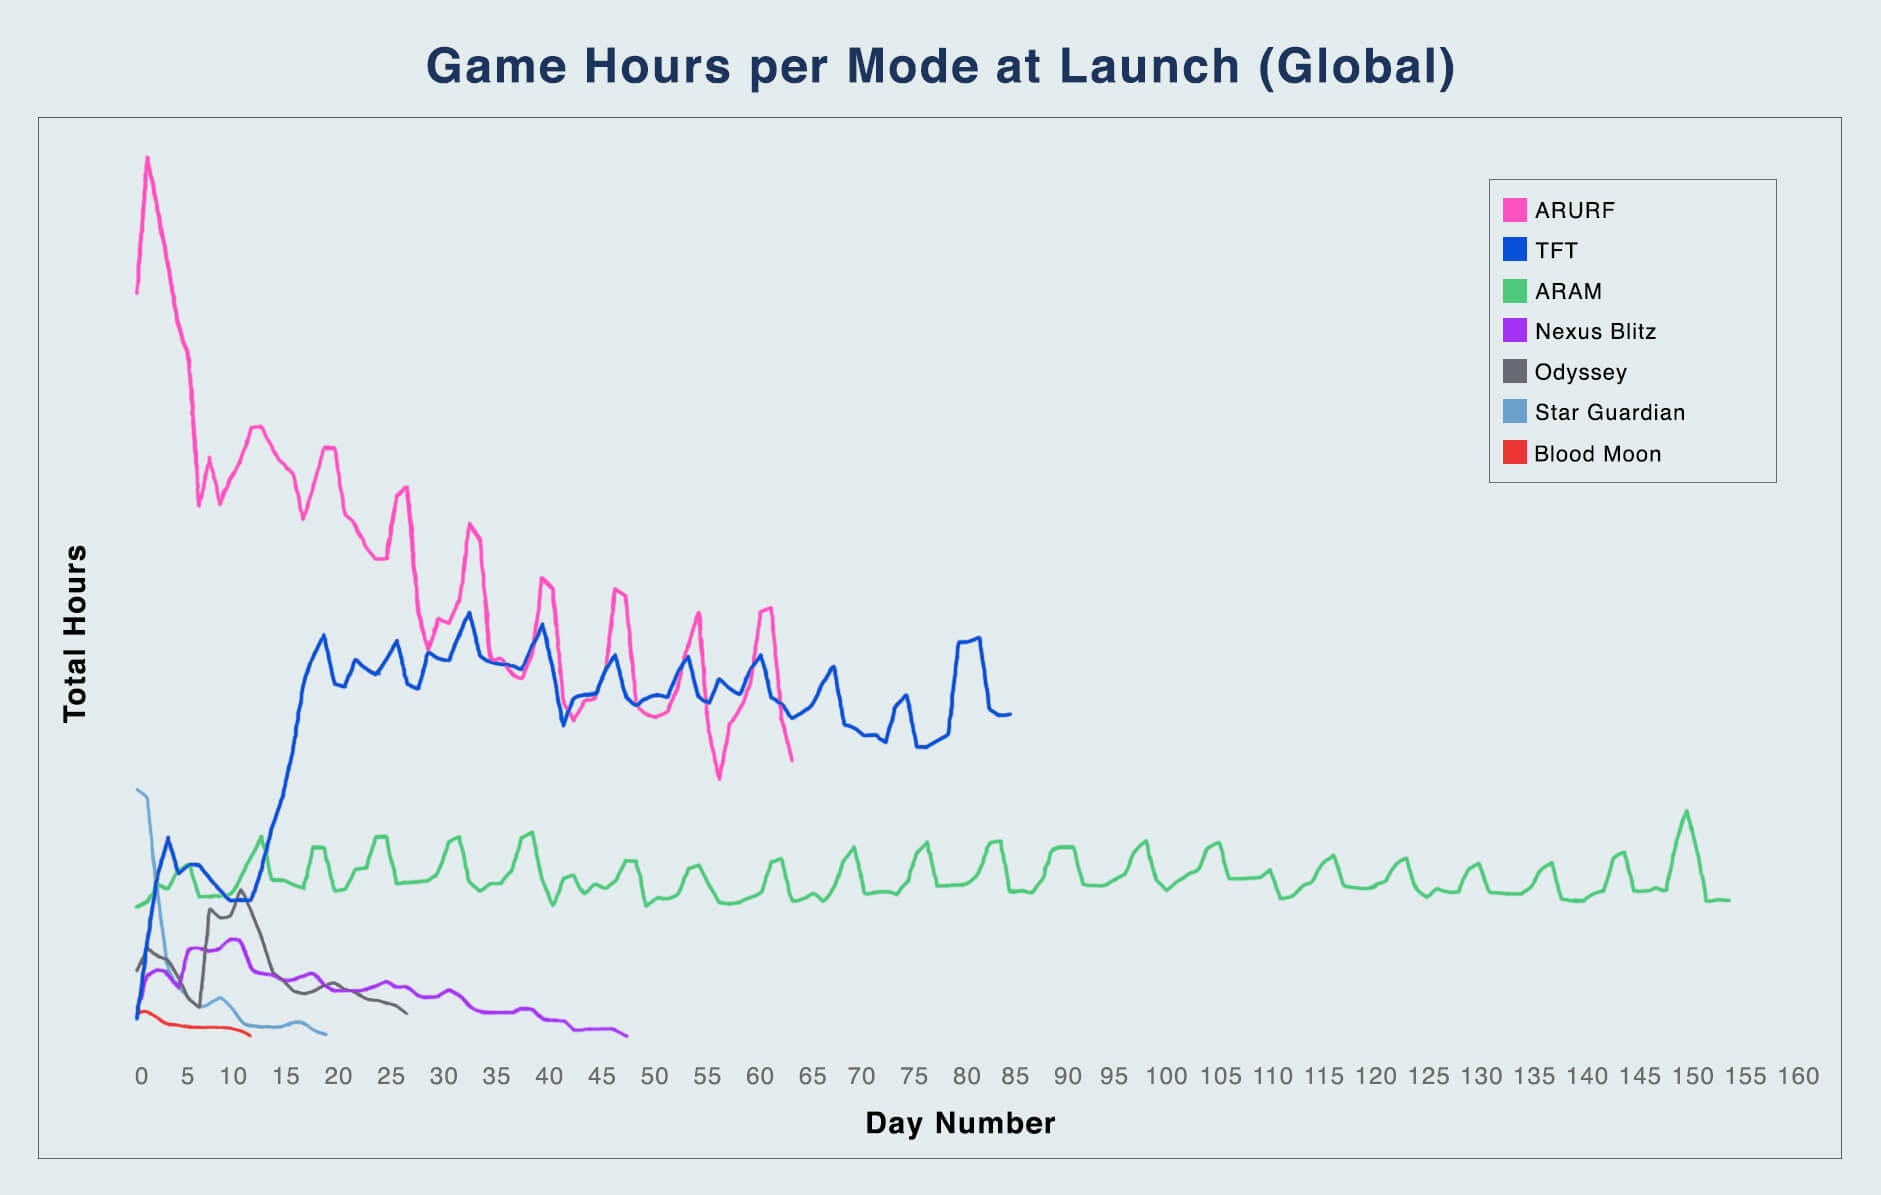 This chart represents the total number of game hours played per day per mode post launch.